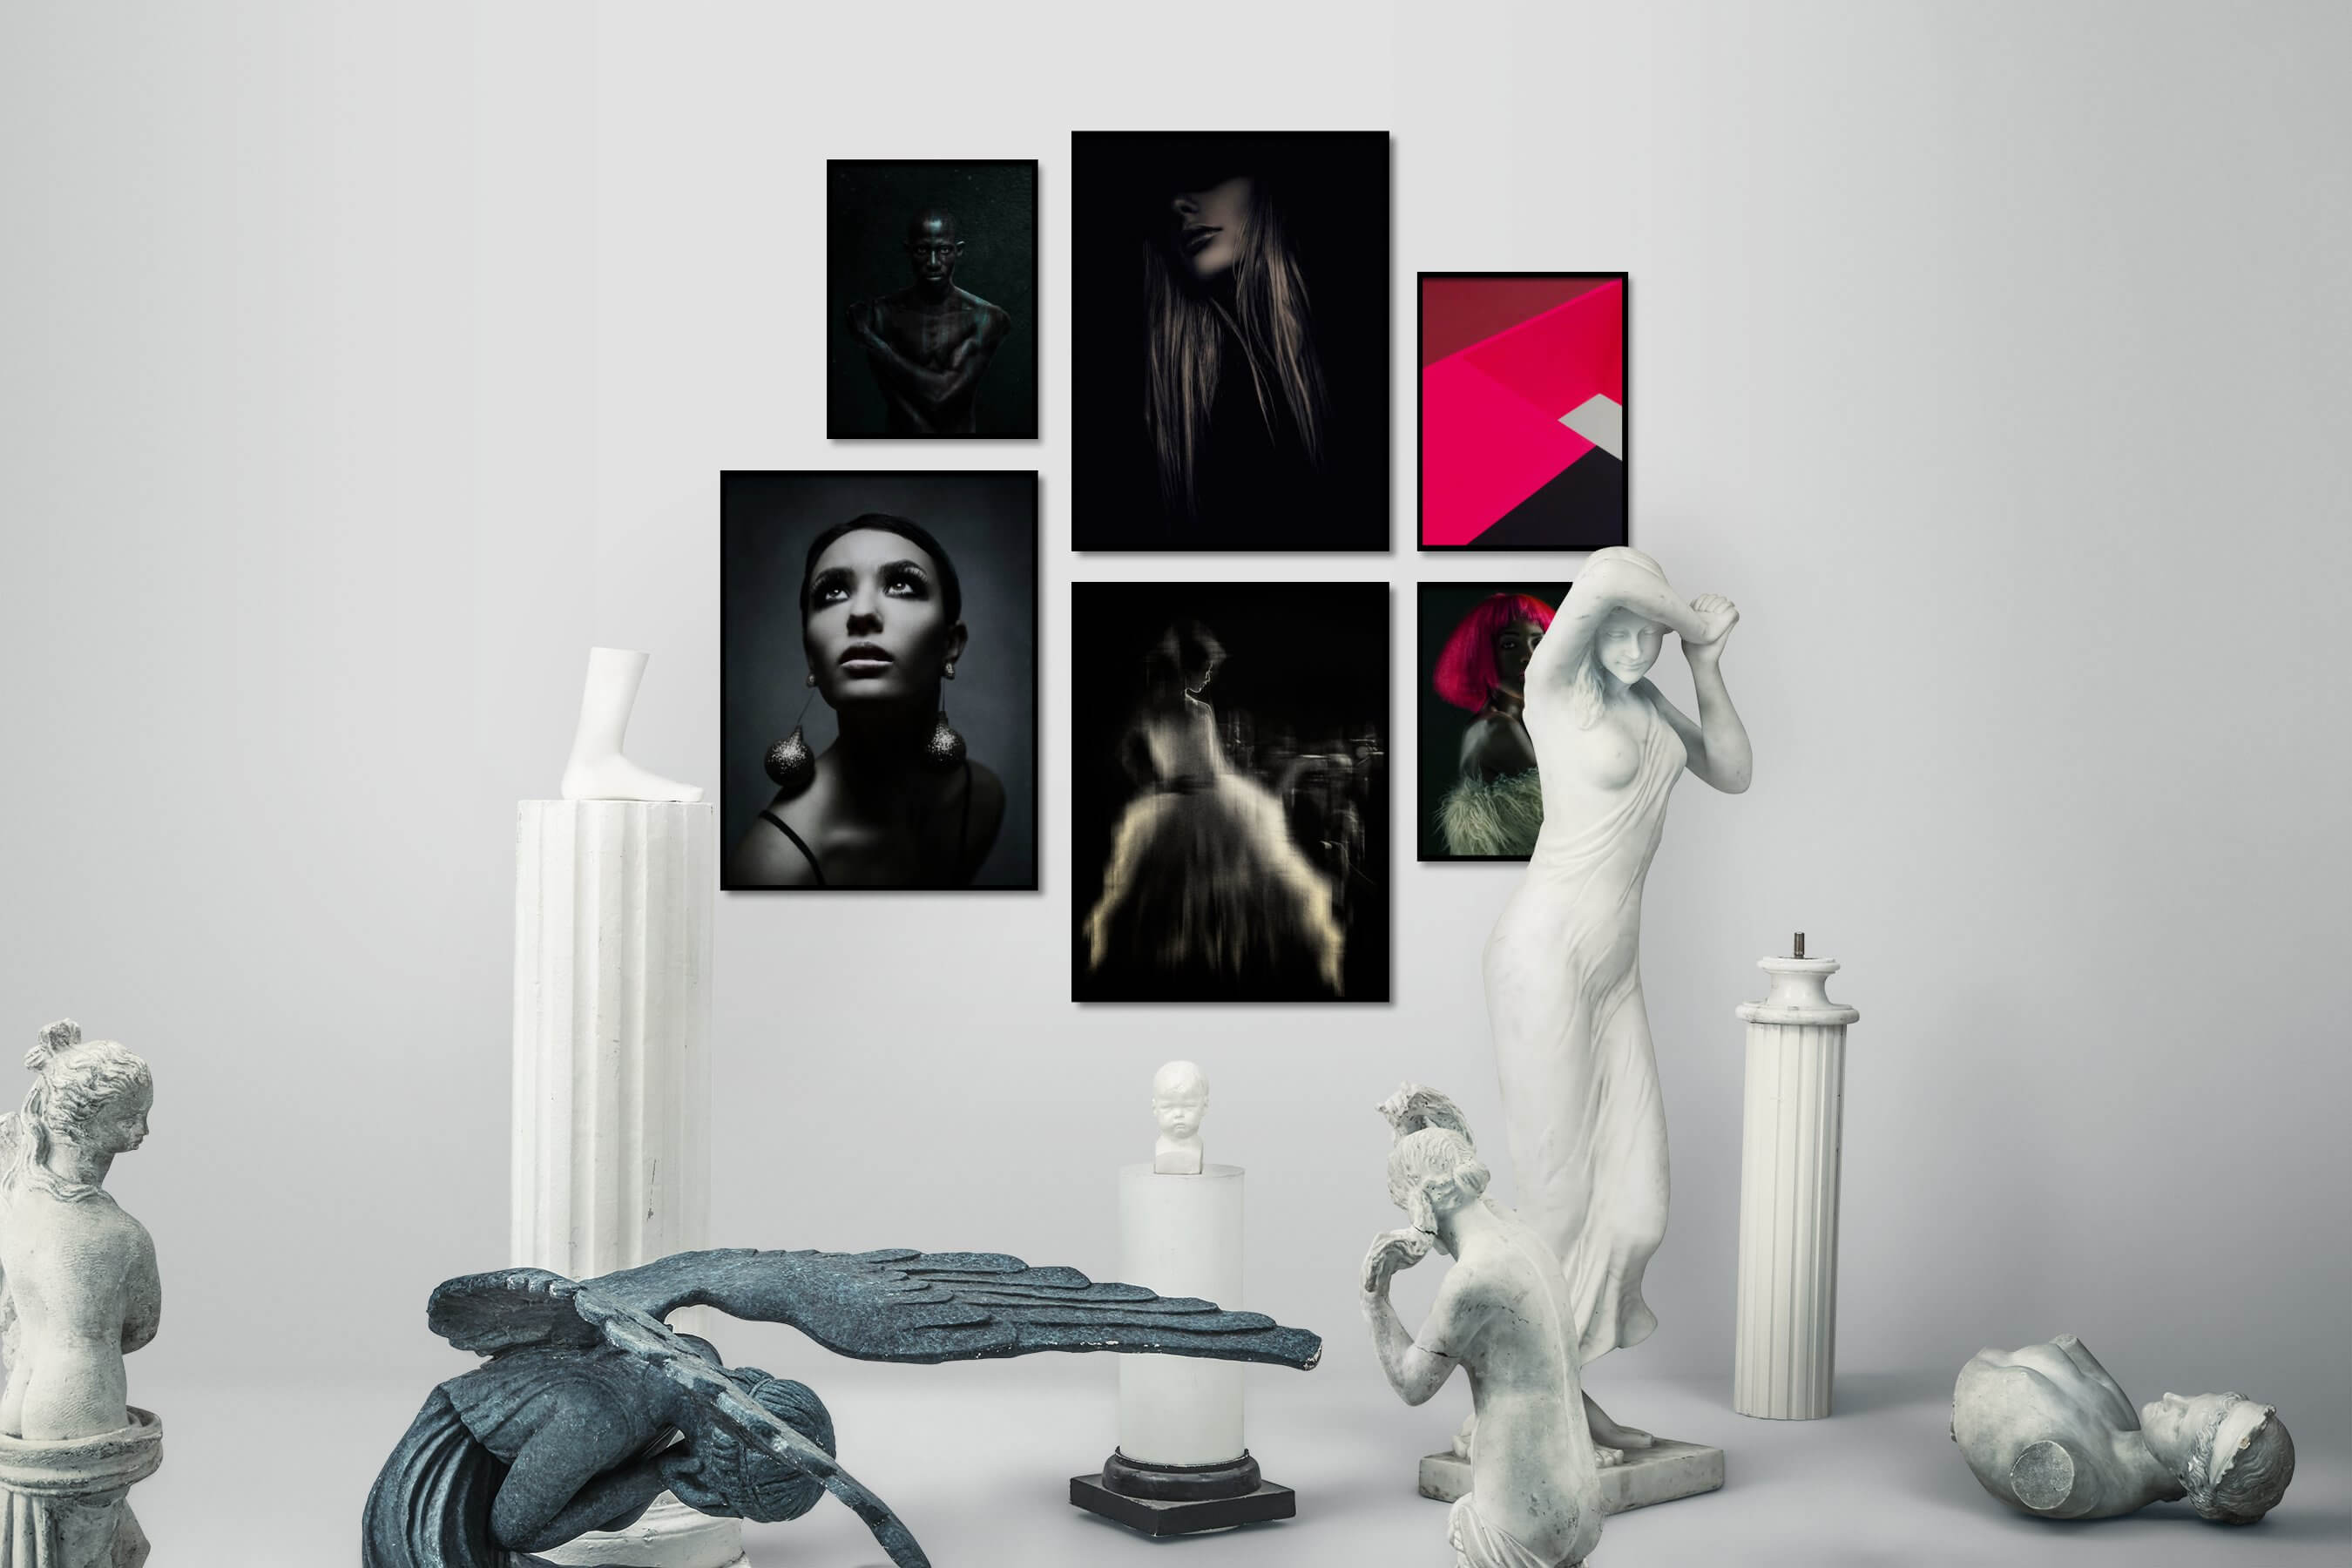 Gallery wall idea with six framed pictures arranged on a wall depicting Fashion & Beauty, Black & White, Dark Tones, For the Minimalist, Colorful, and Vintage